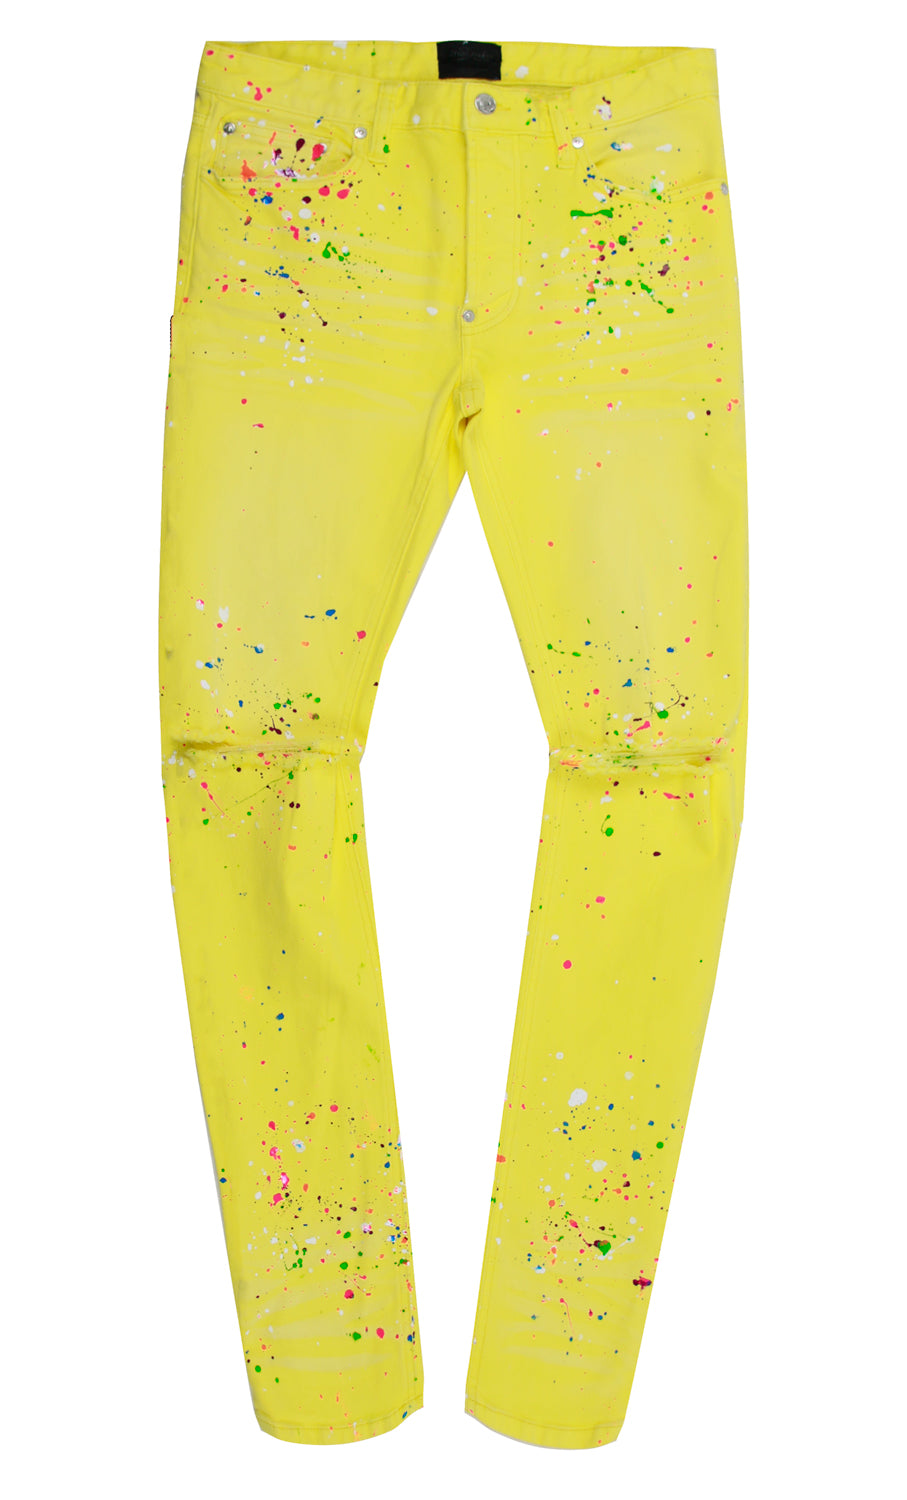 QUENTIN YELLOW SPLATTER PANT